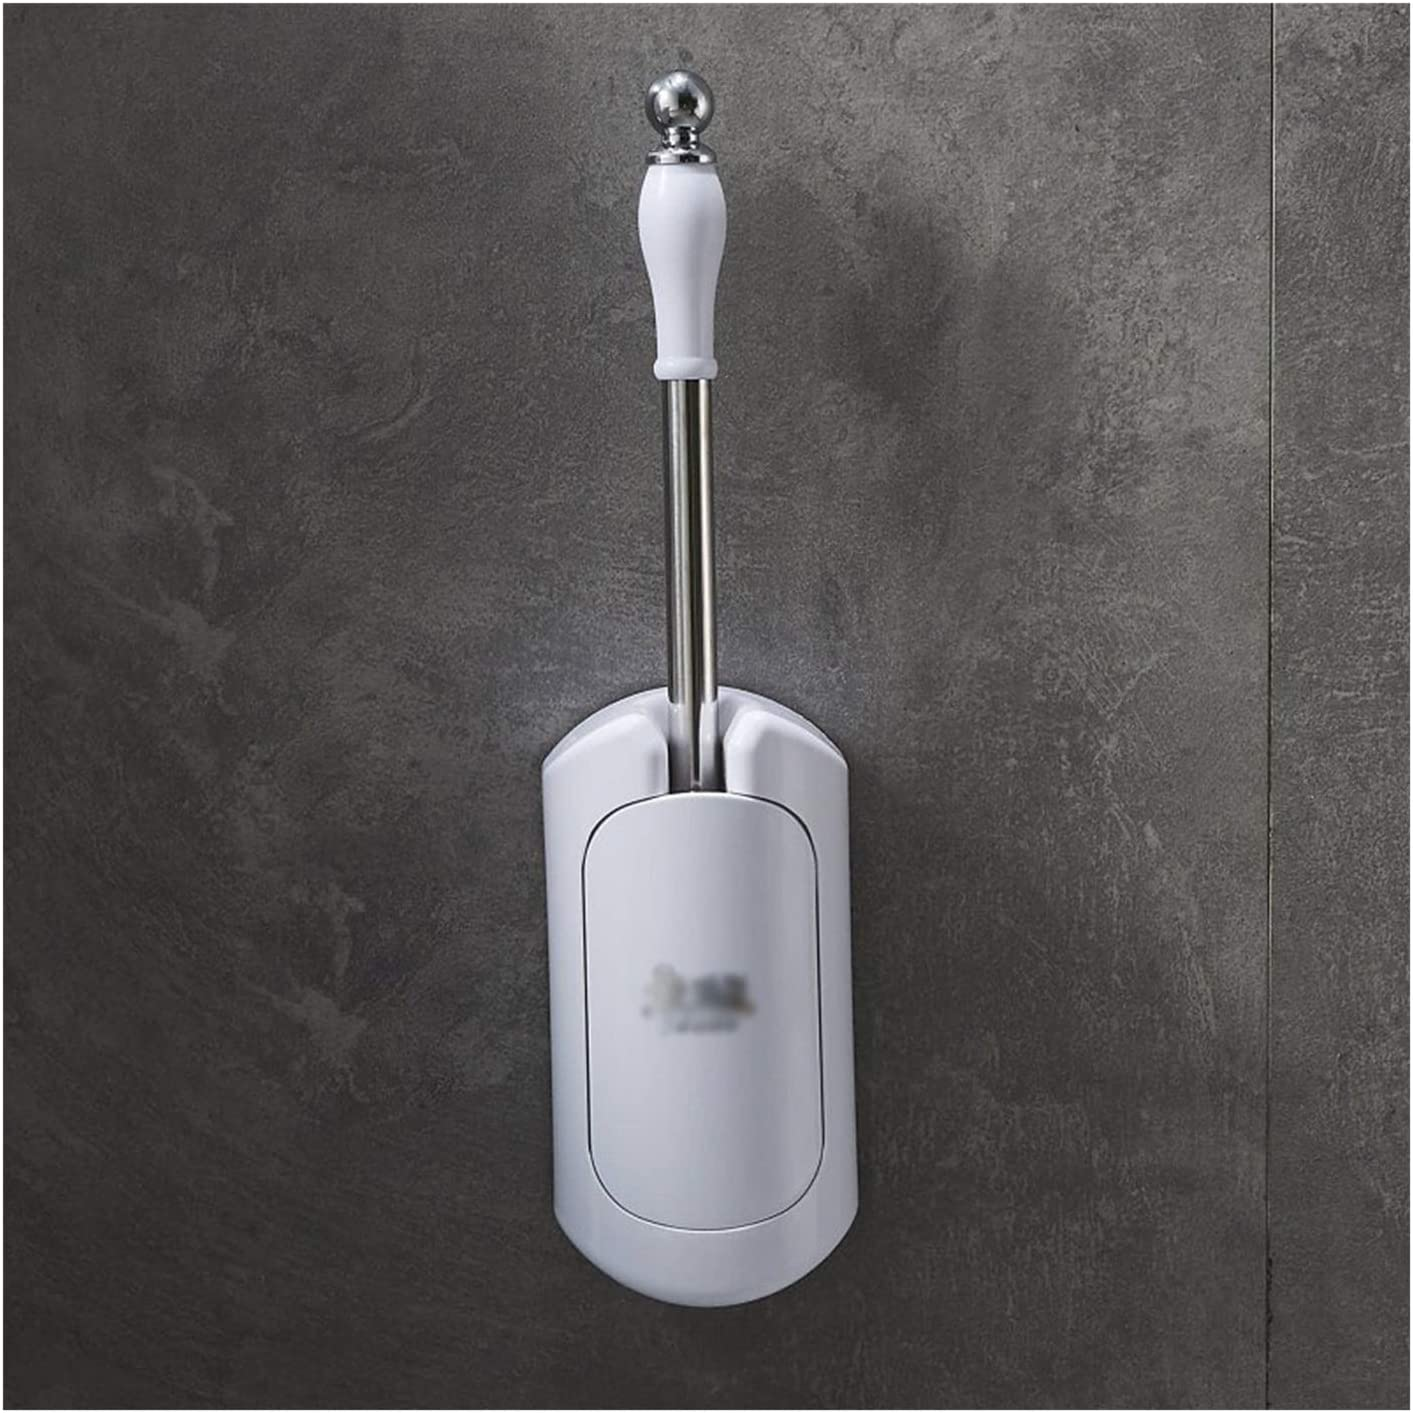 YZERTLH Wholesale Toilet Brush Regular dealer Wall-Mounted Cleaning and Set